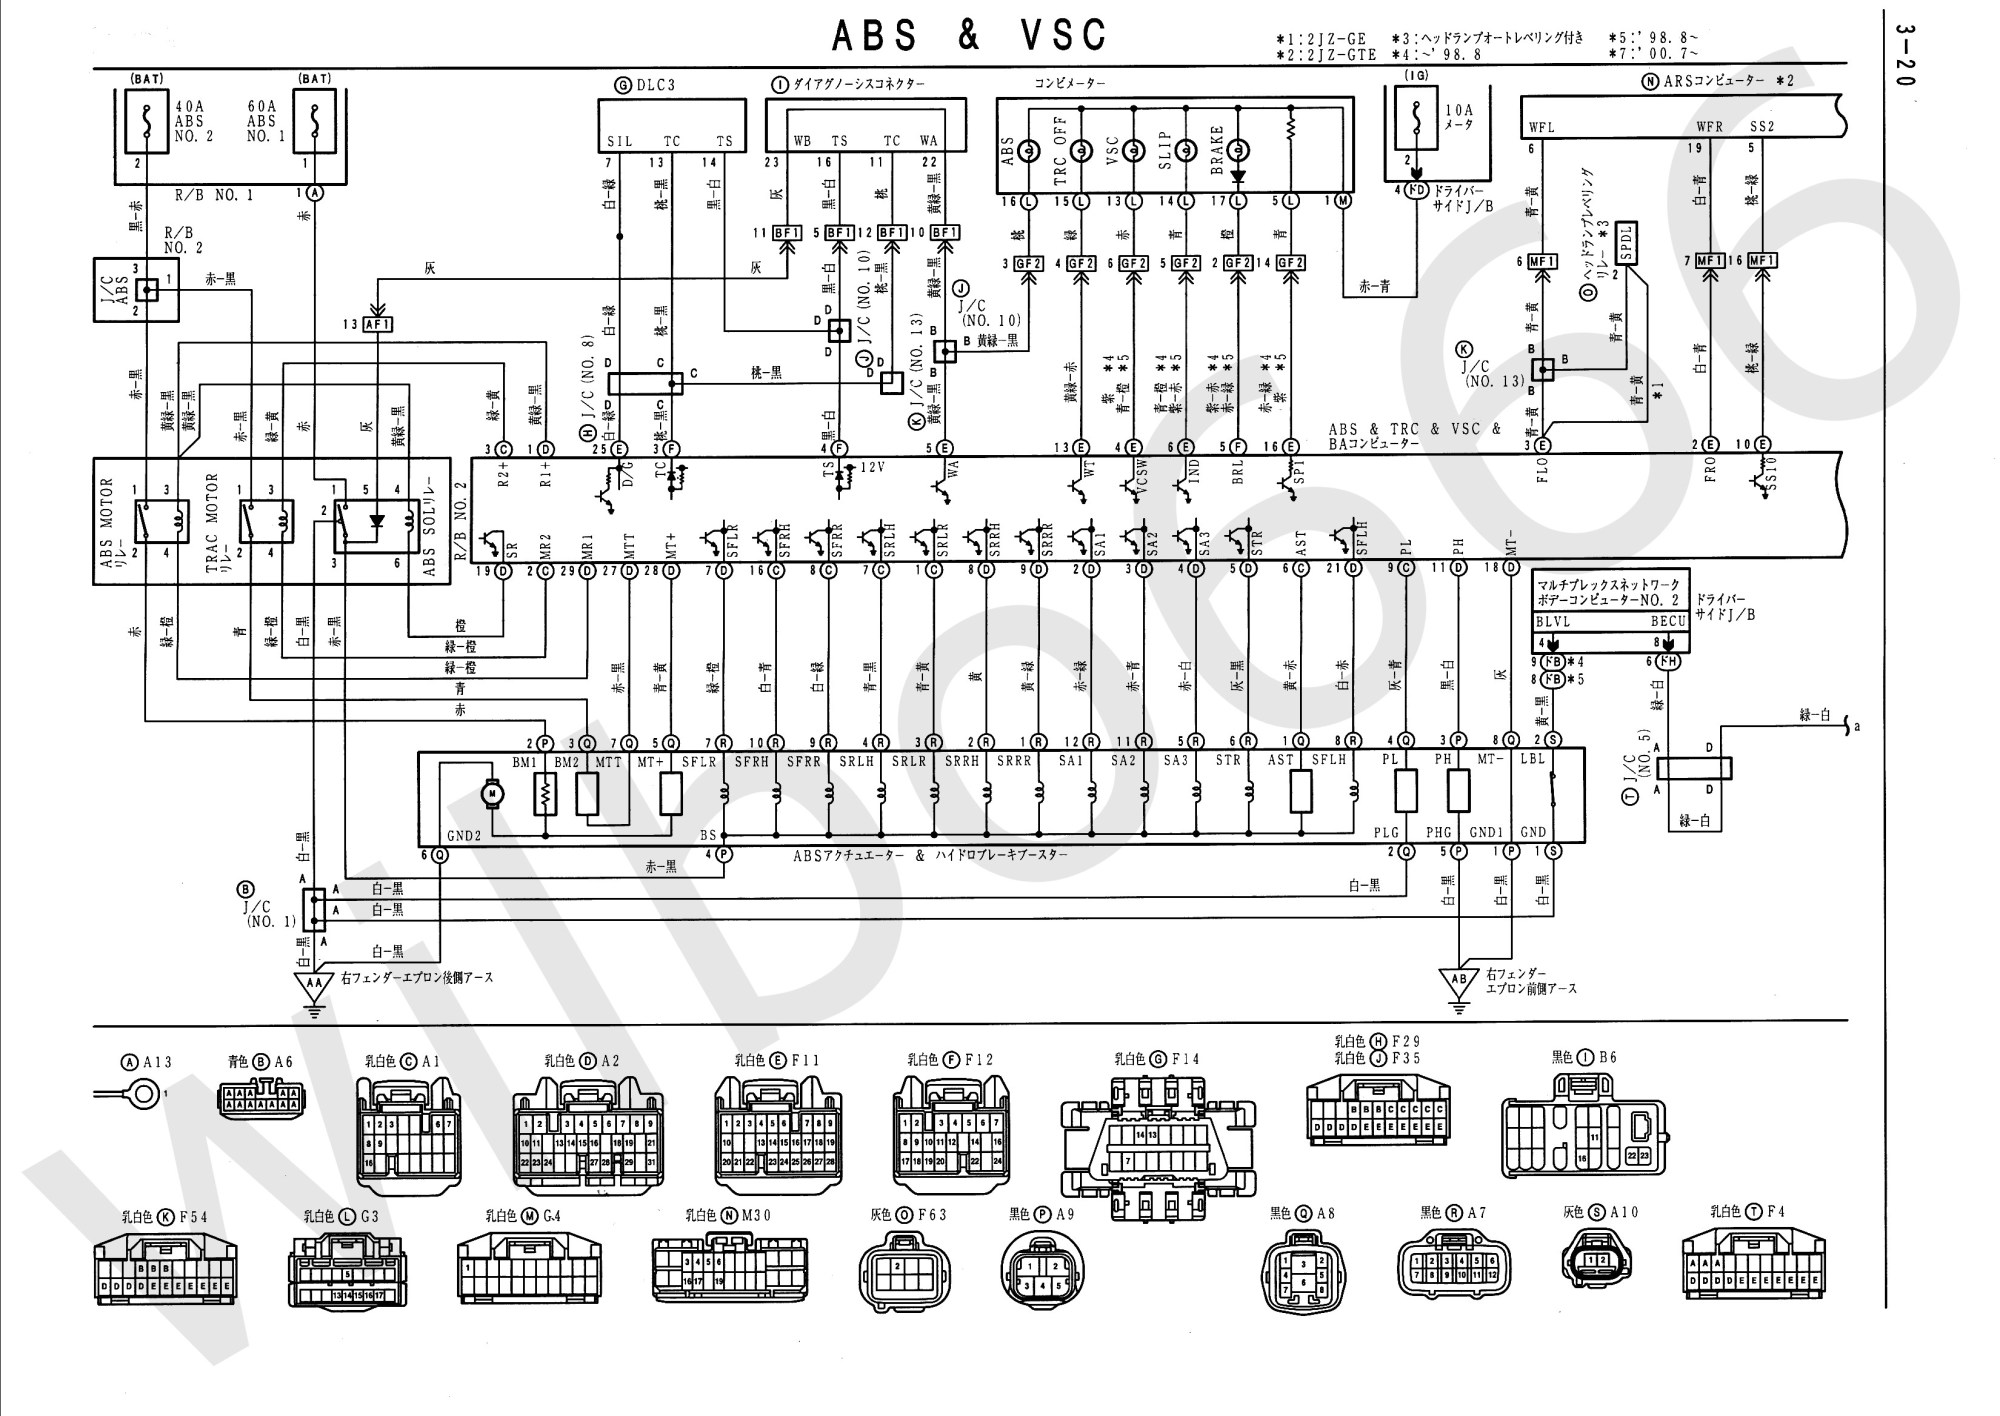 hight resolution of daihatsu l5 wiring diagram wiring diagrams daihatsu mira l5 wiring diagram daihatsu l5 wiring diagram